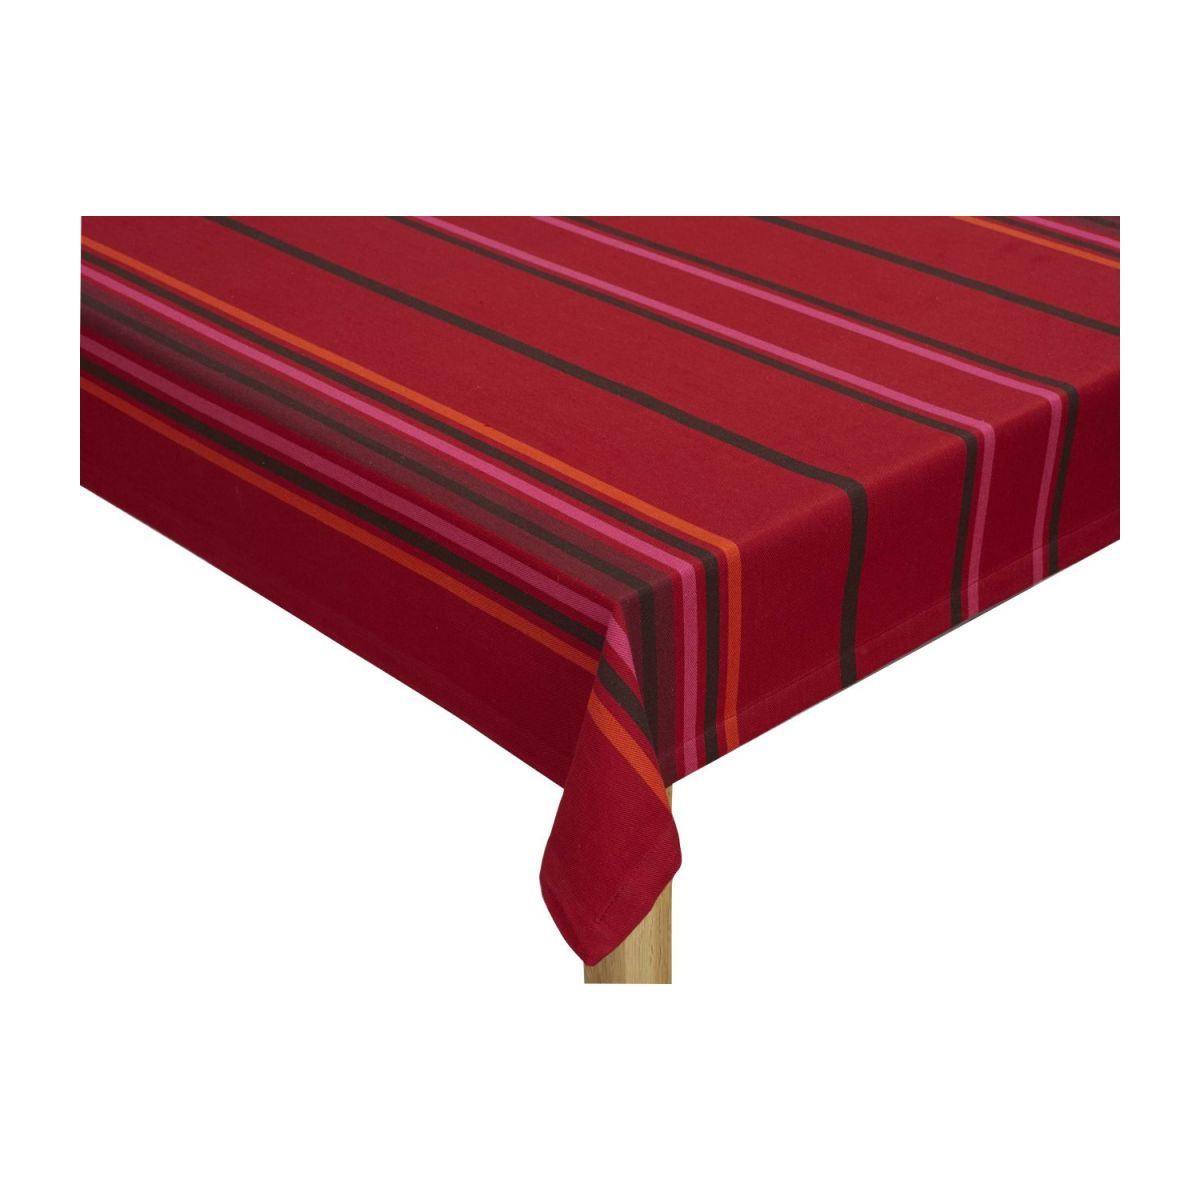 Nappe rectangulaire 180x270cm n°4